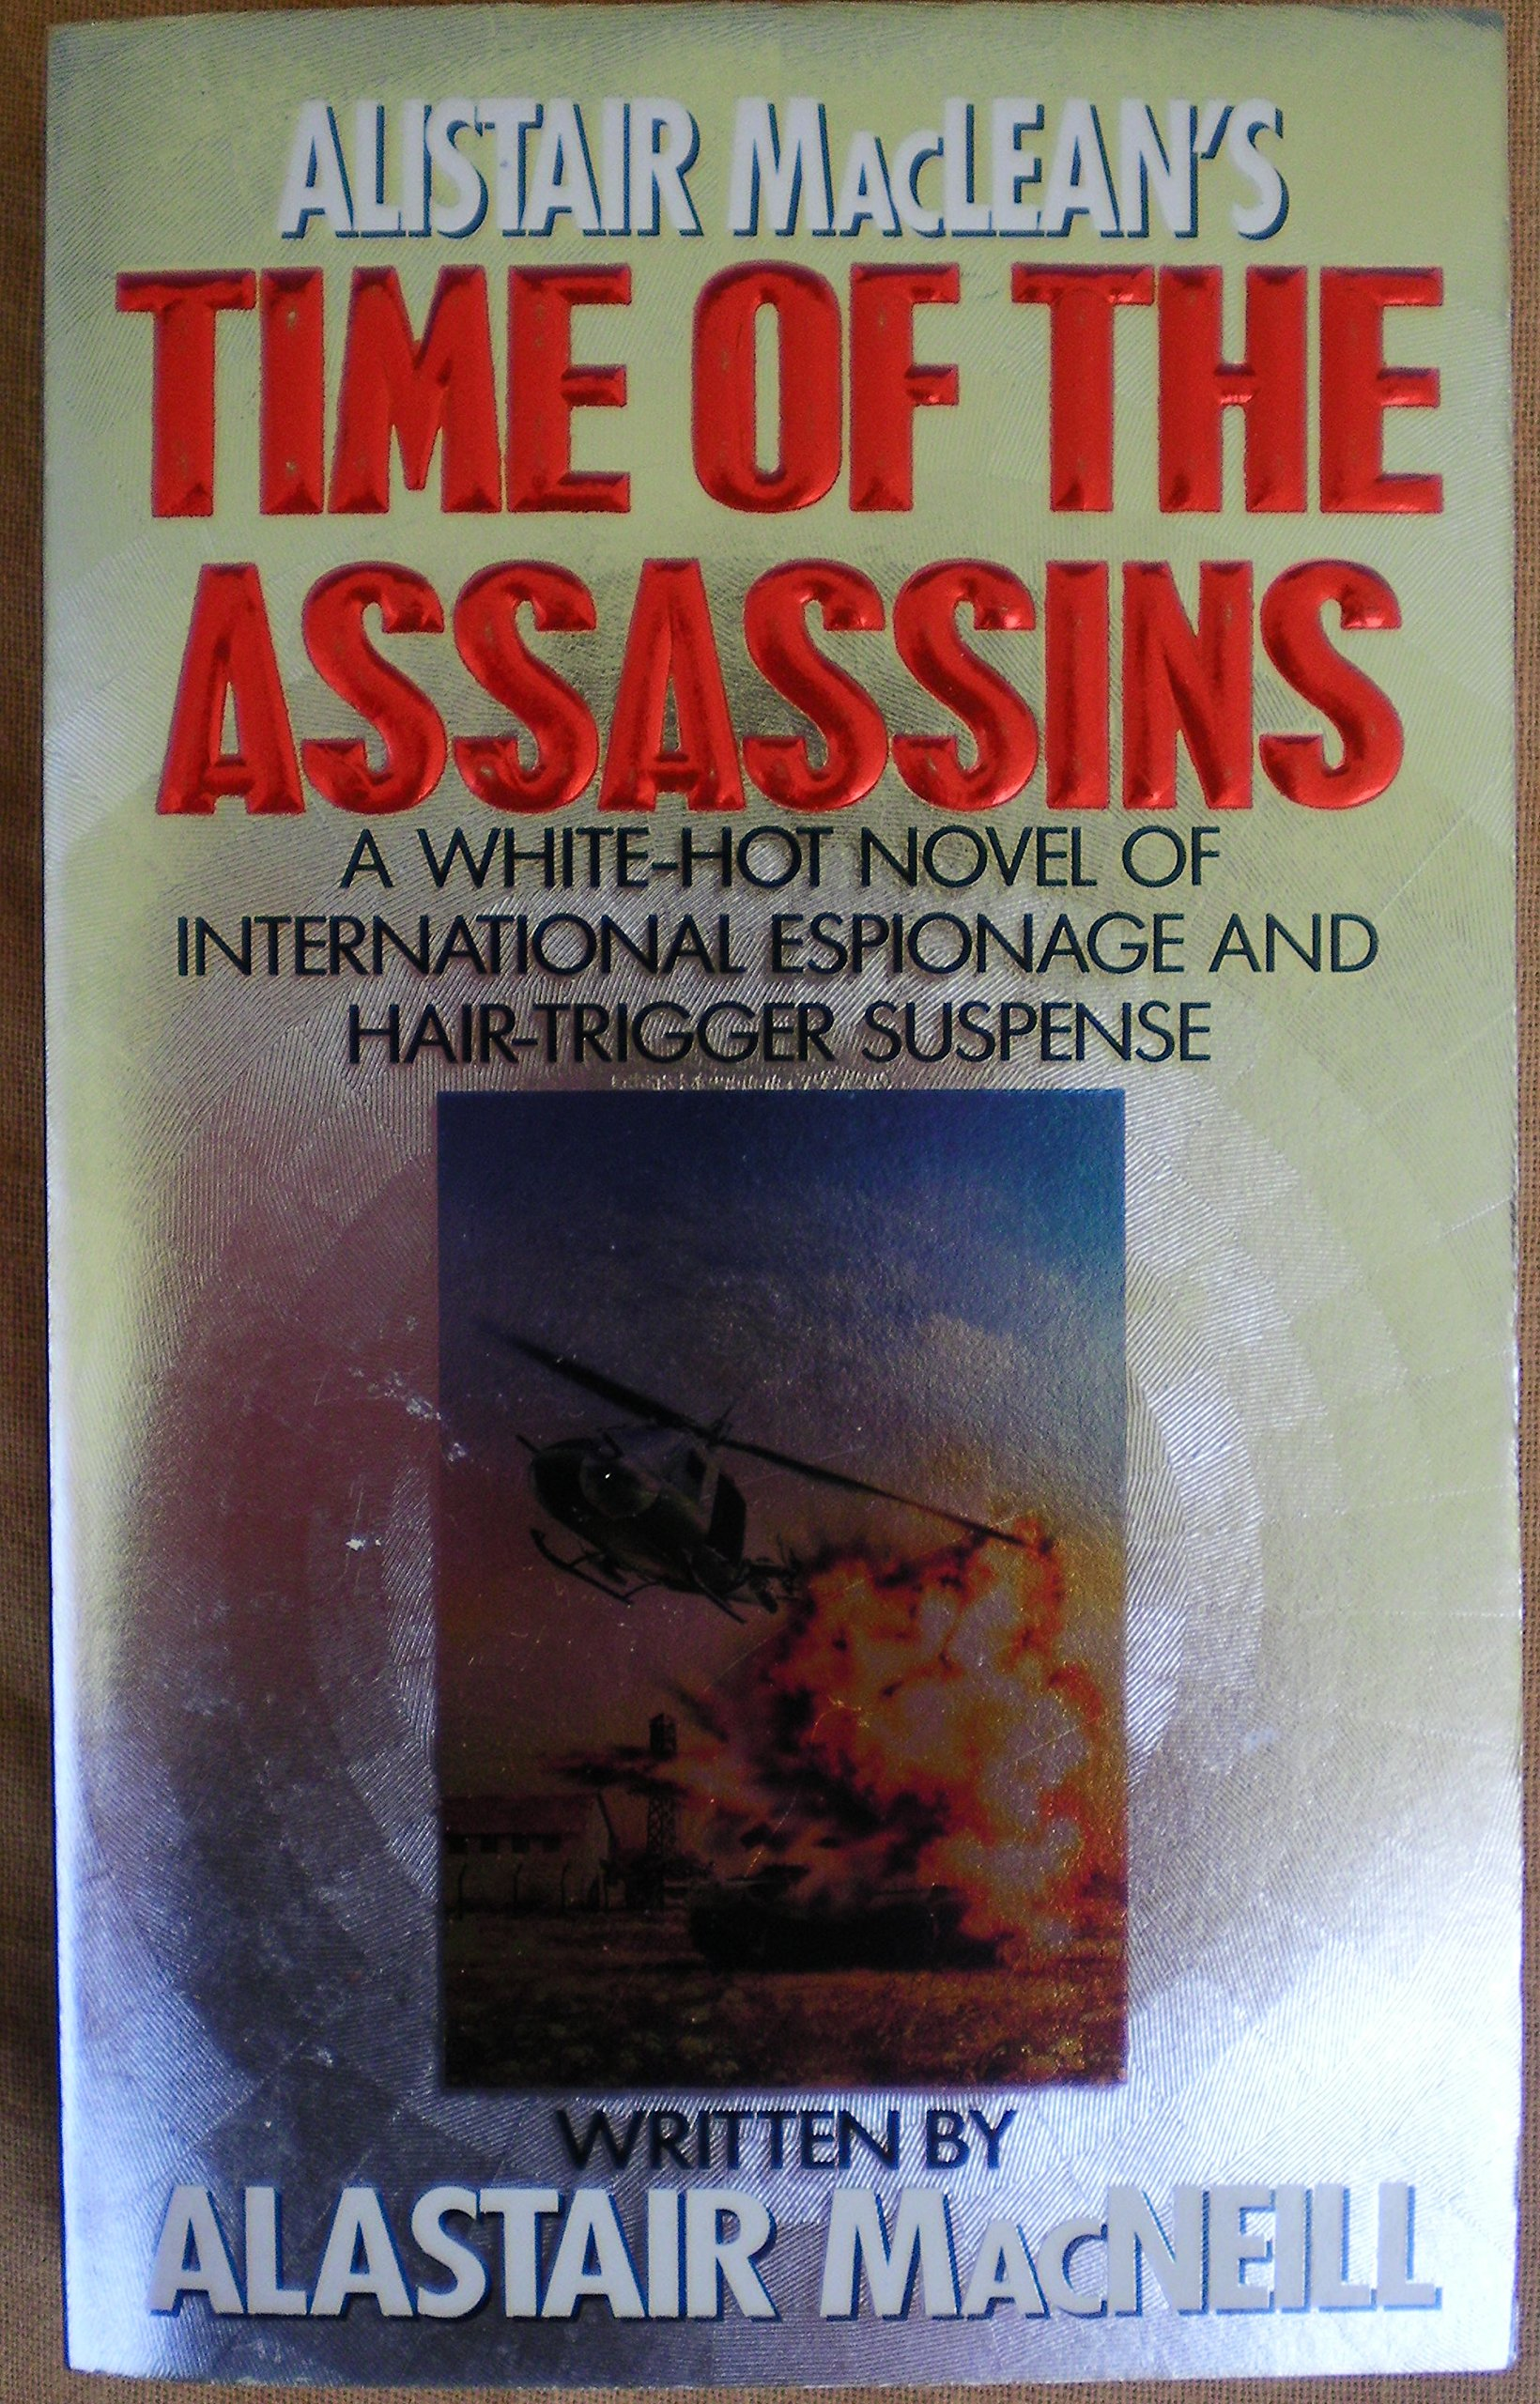 Amazon.com: Alistair Maclean's Time of the Assassins (9780061042294):  Alastair MacNeill: Books